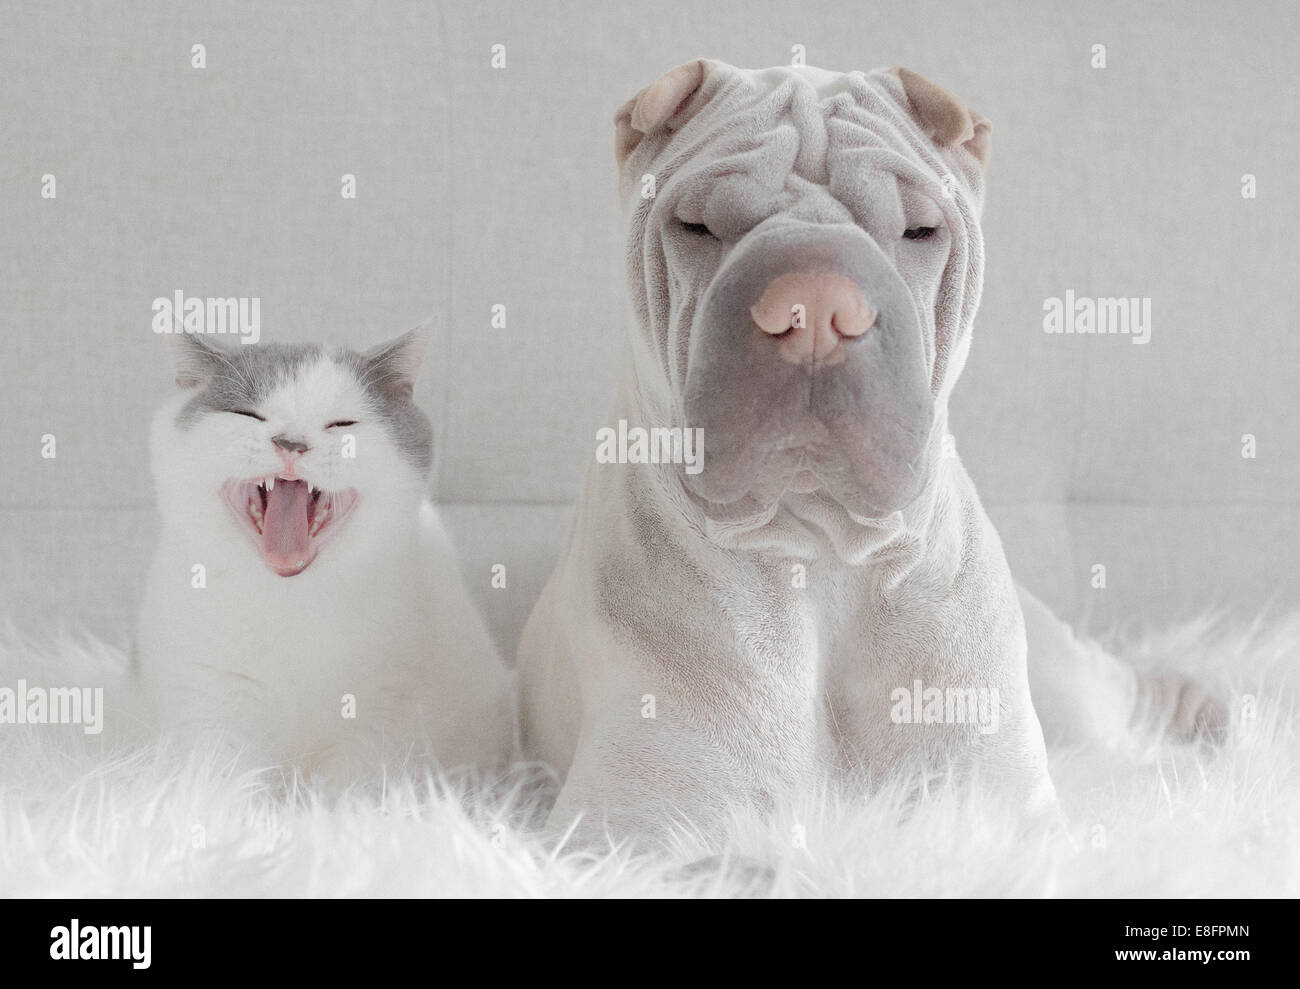 Front view of shar pei and cat - Stock Image